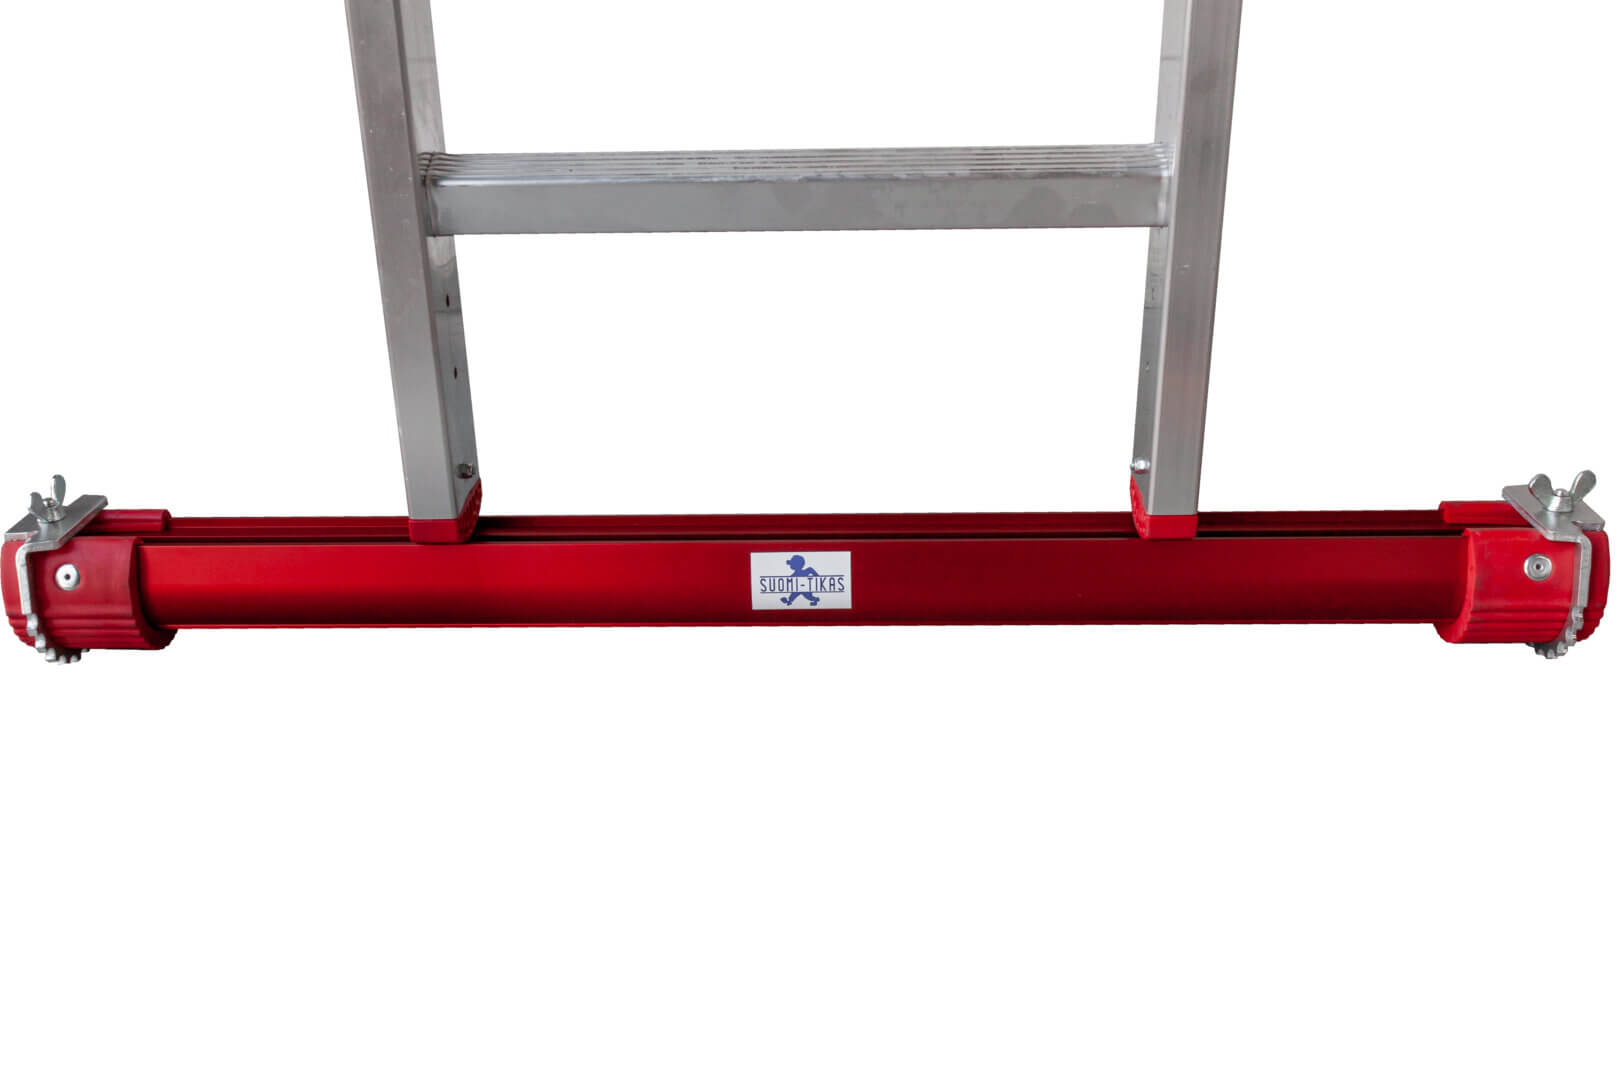 Swivel spikes for lower bars on level ladders - Suomi-Tikas Oy